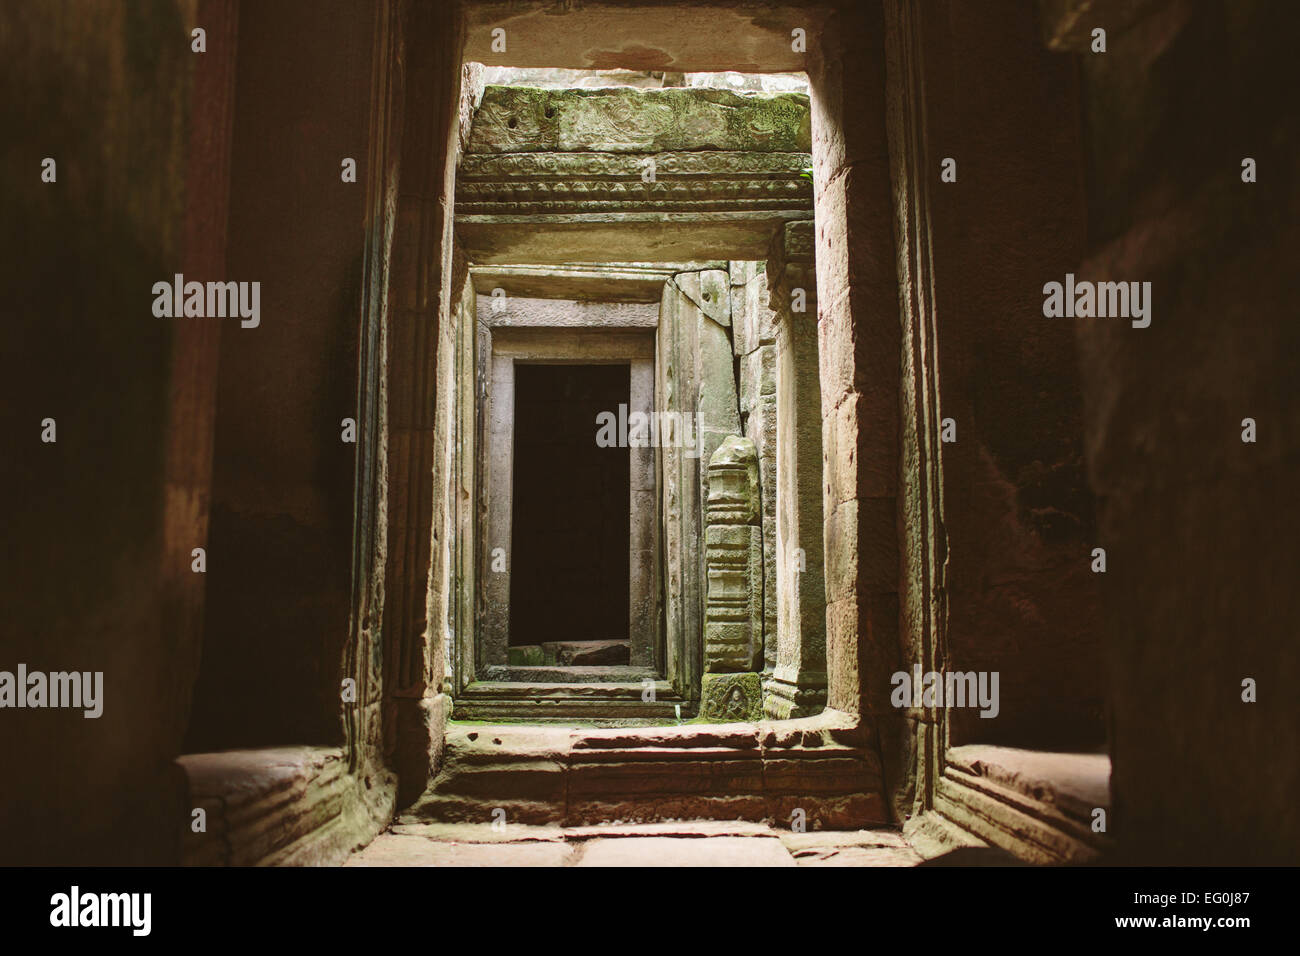 Cambodia, Angkor Thom Temple Passageway Stock Photo